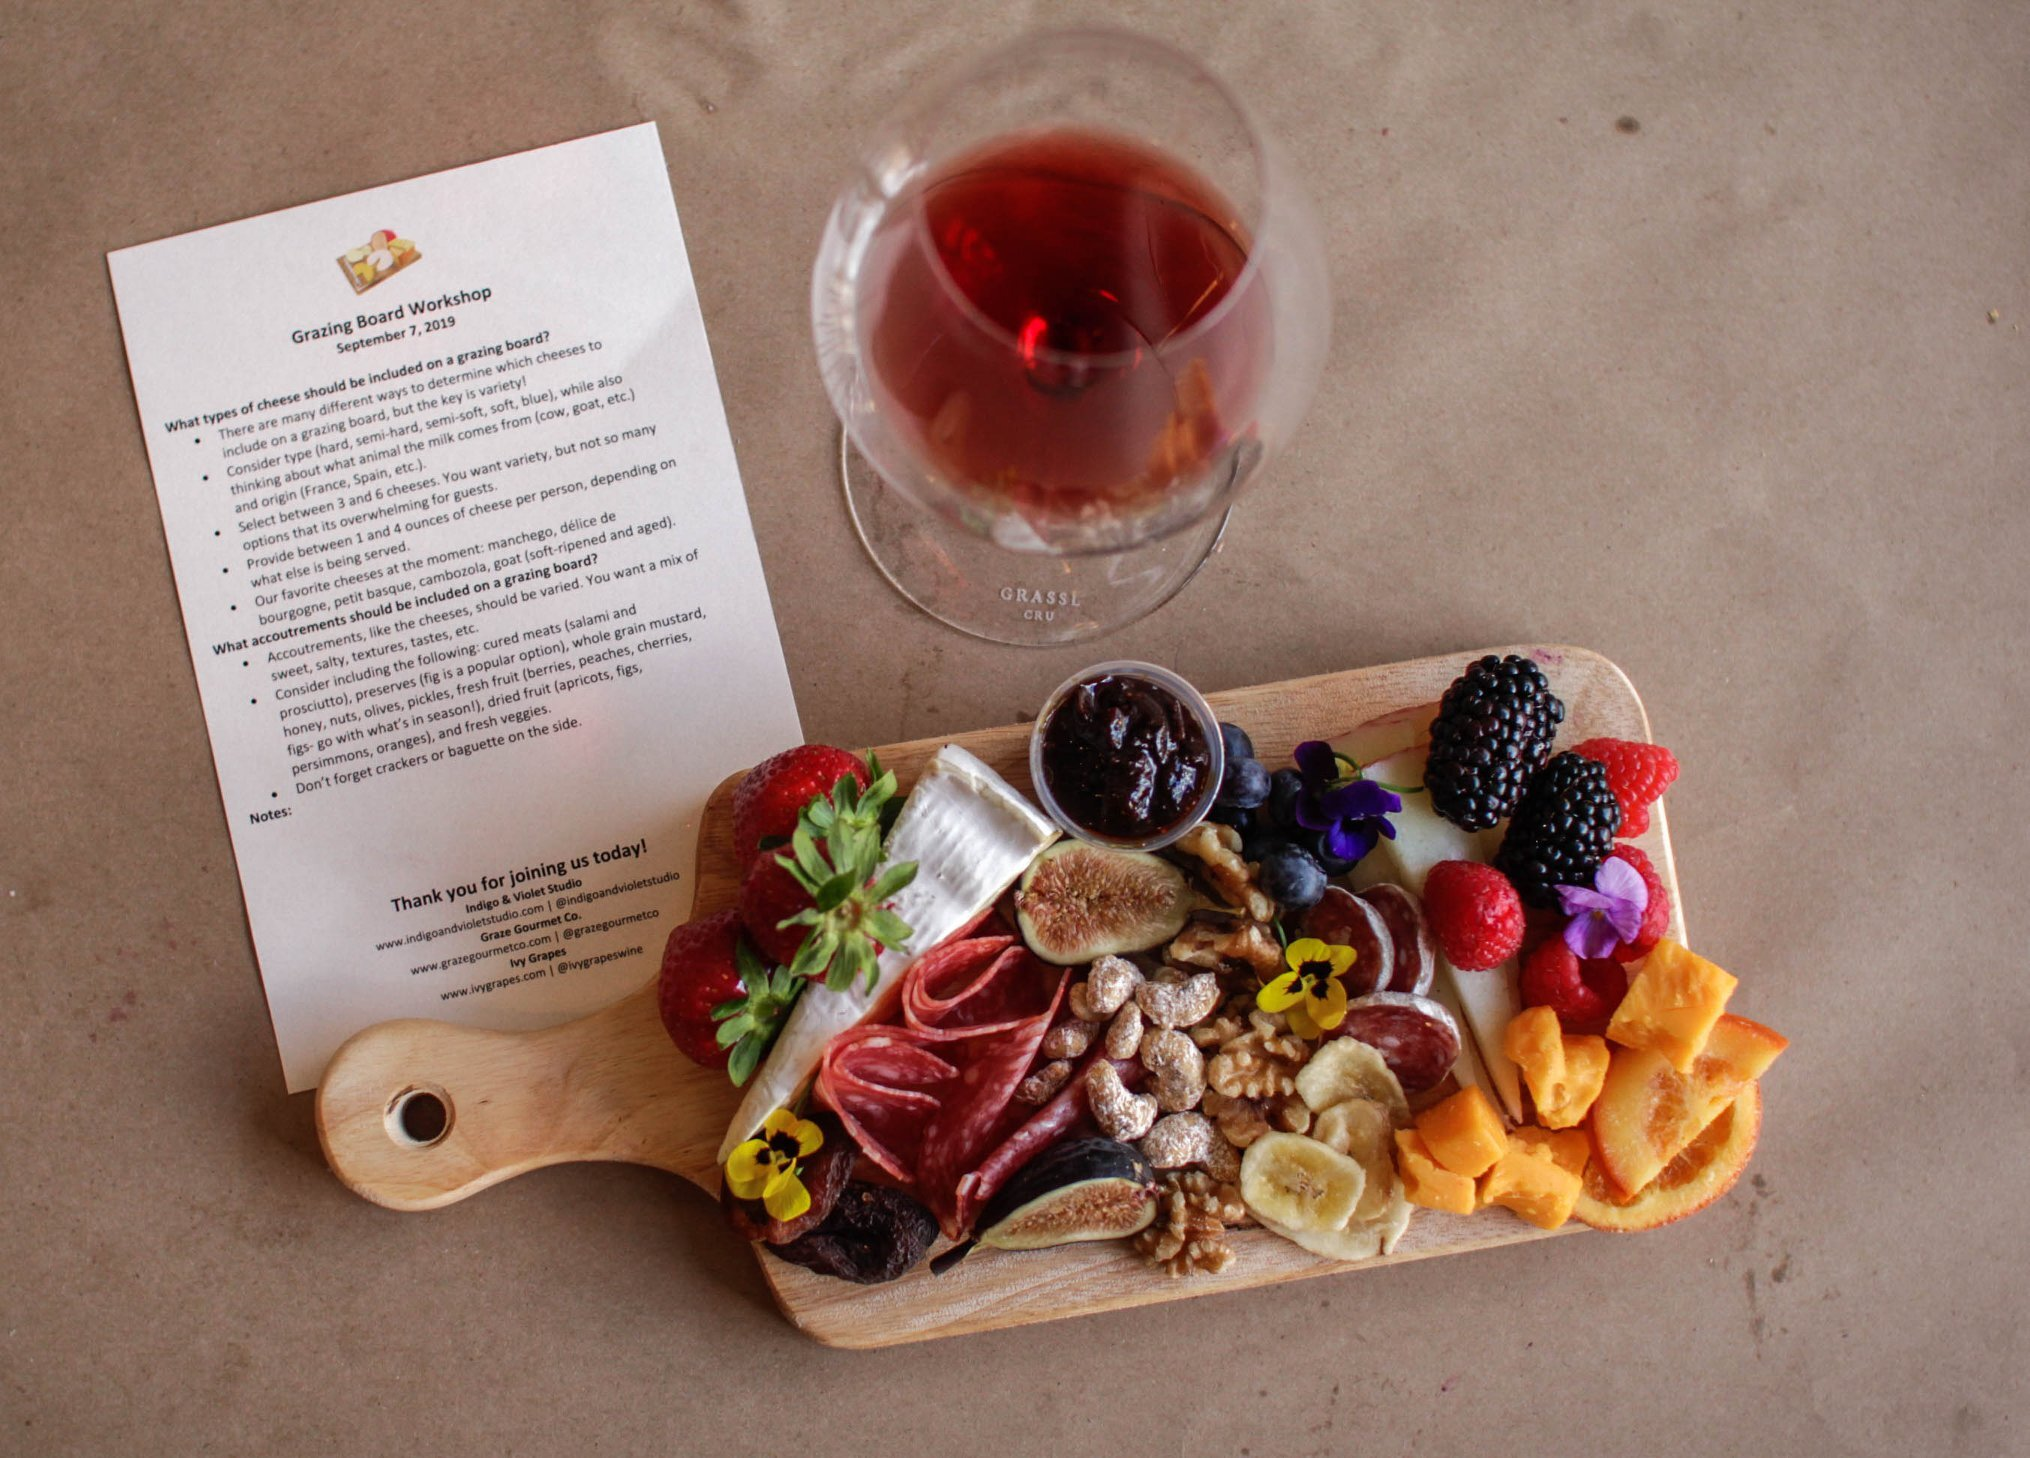 Wine and Craft in Chicago How to Make a Grazing Board